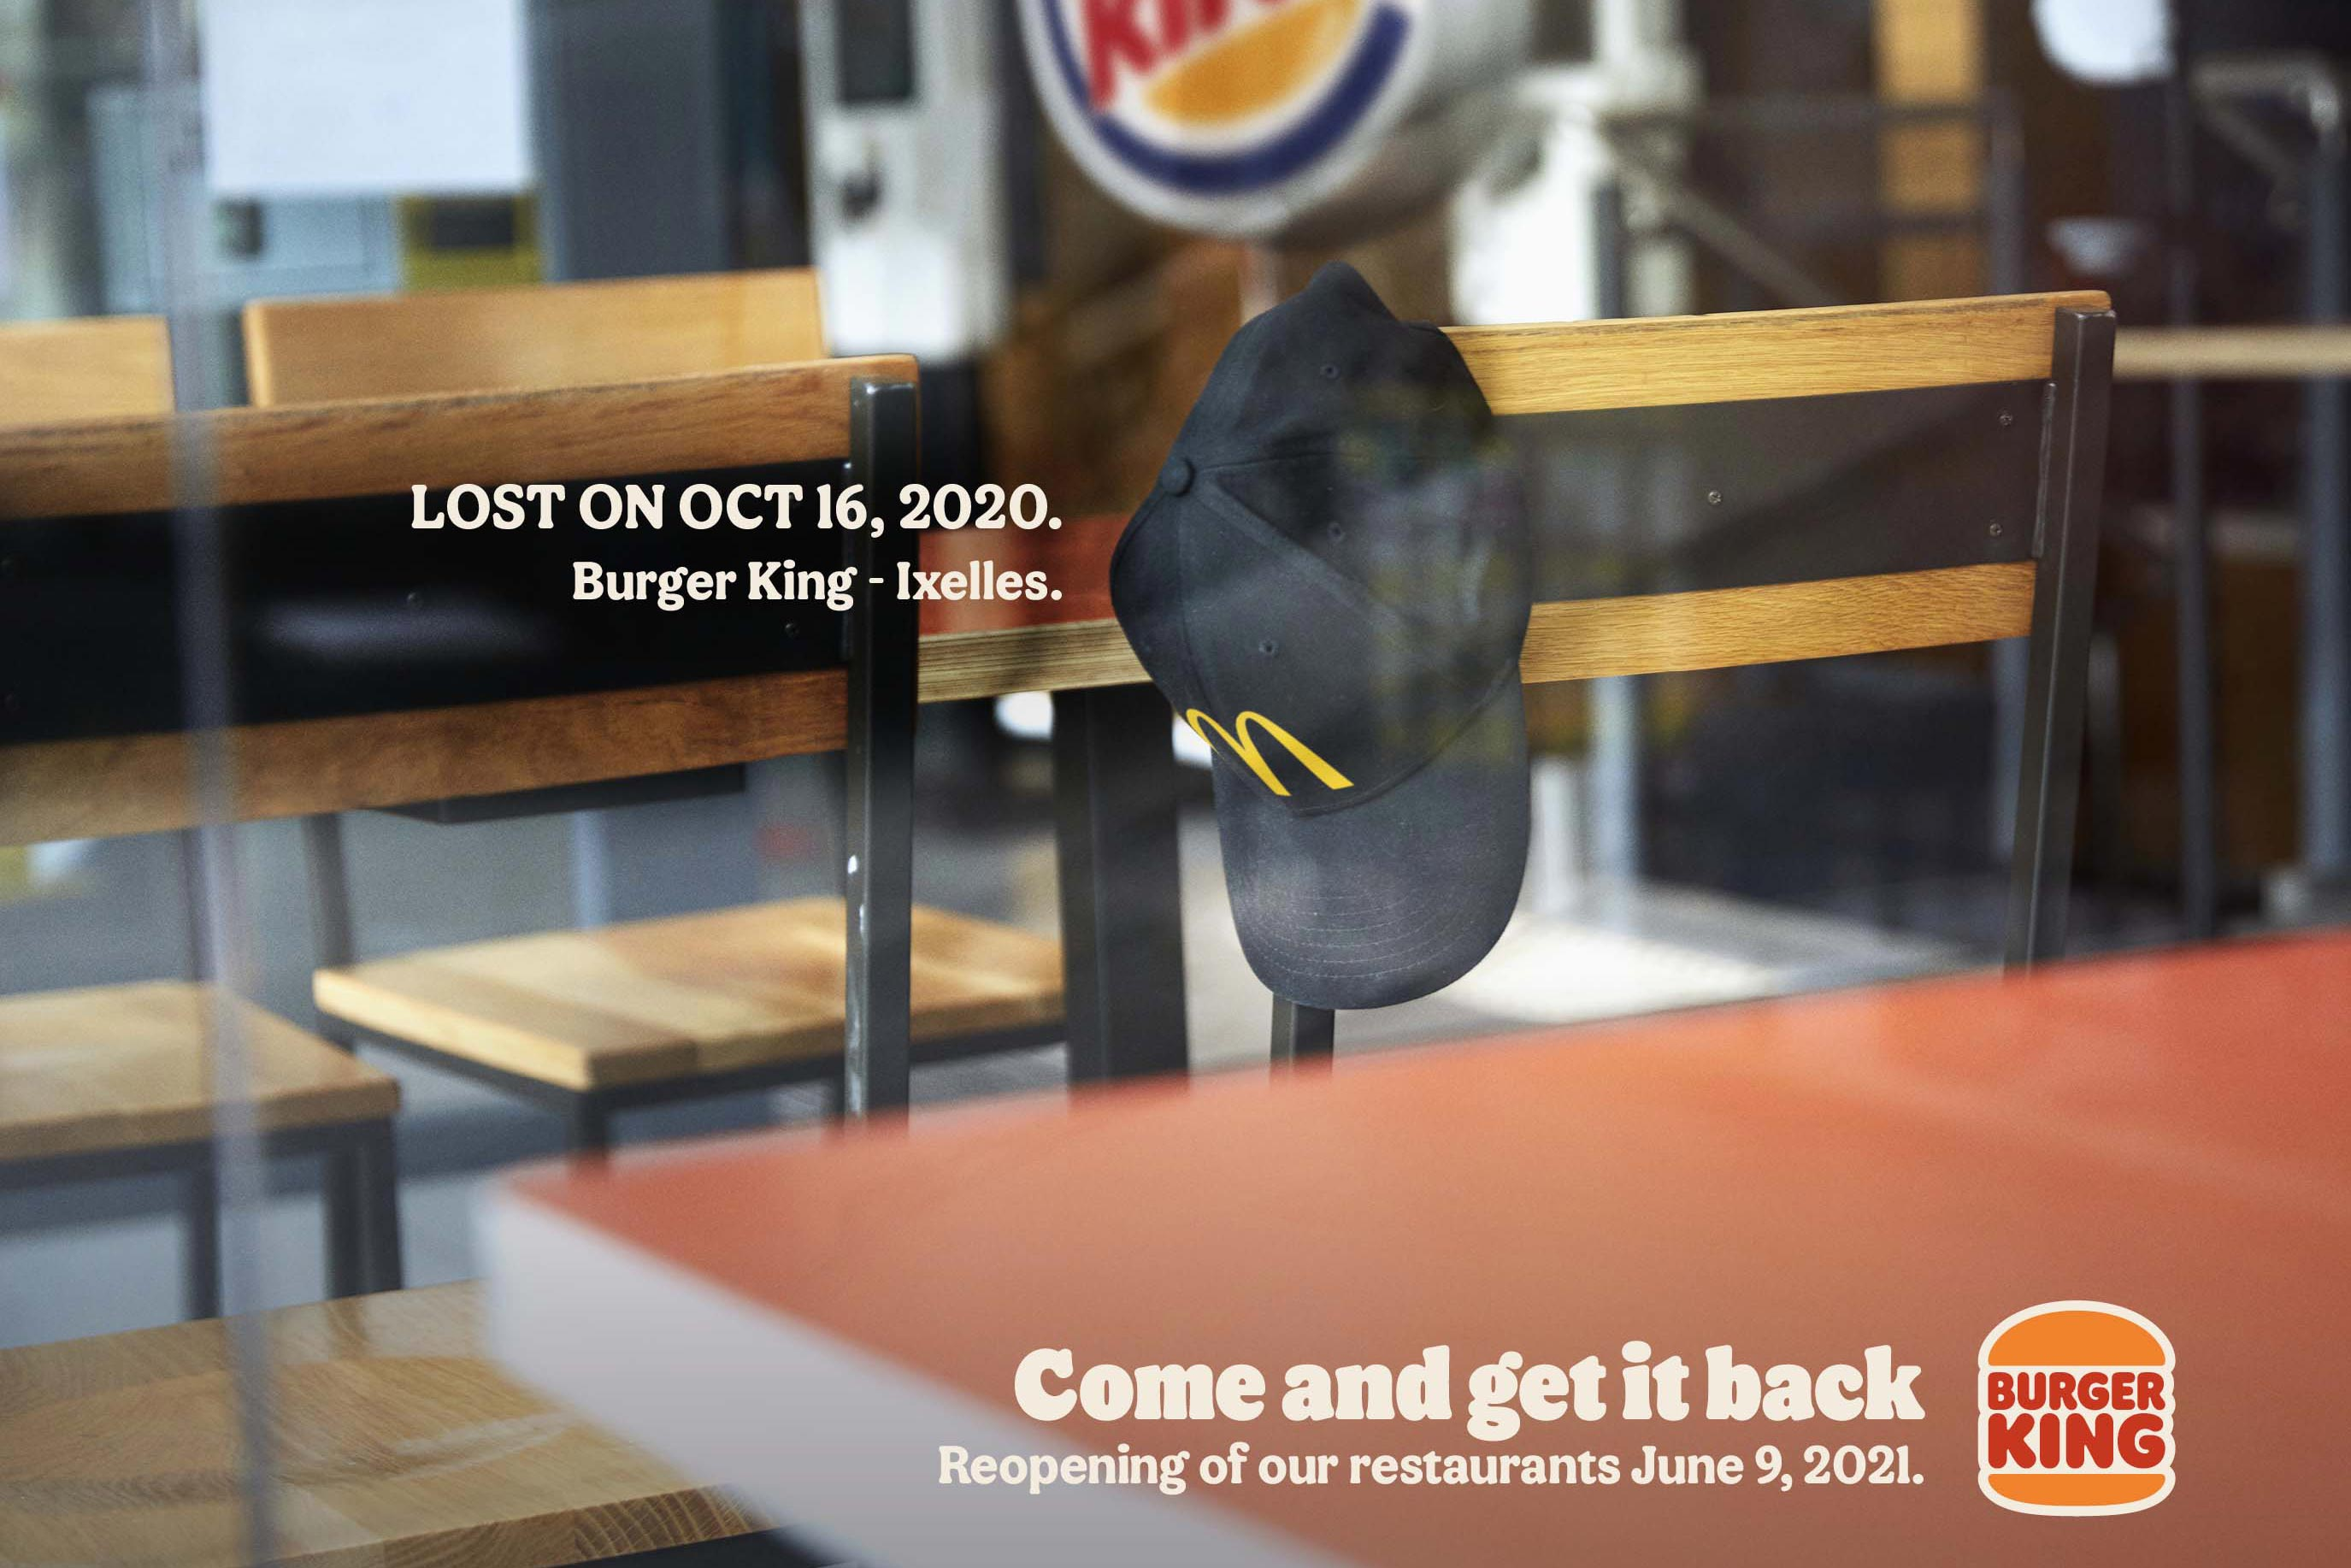 Burger King's welcome-back campaign includes a dig at McDonald's